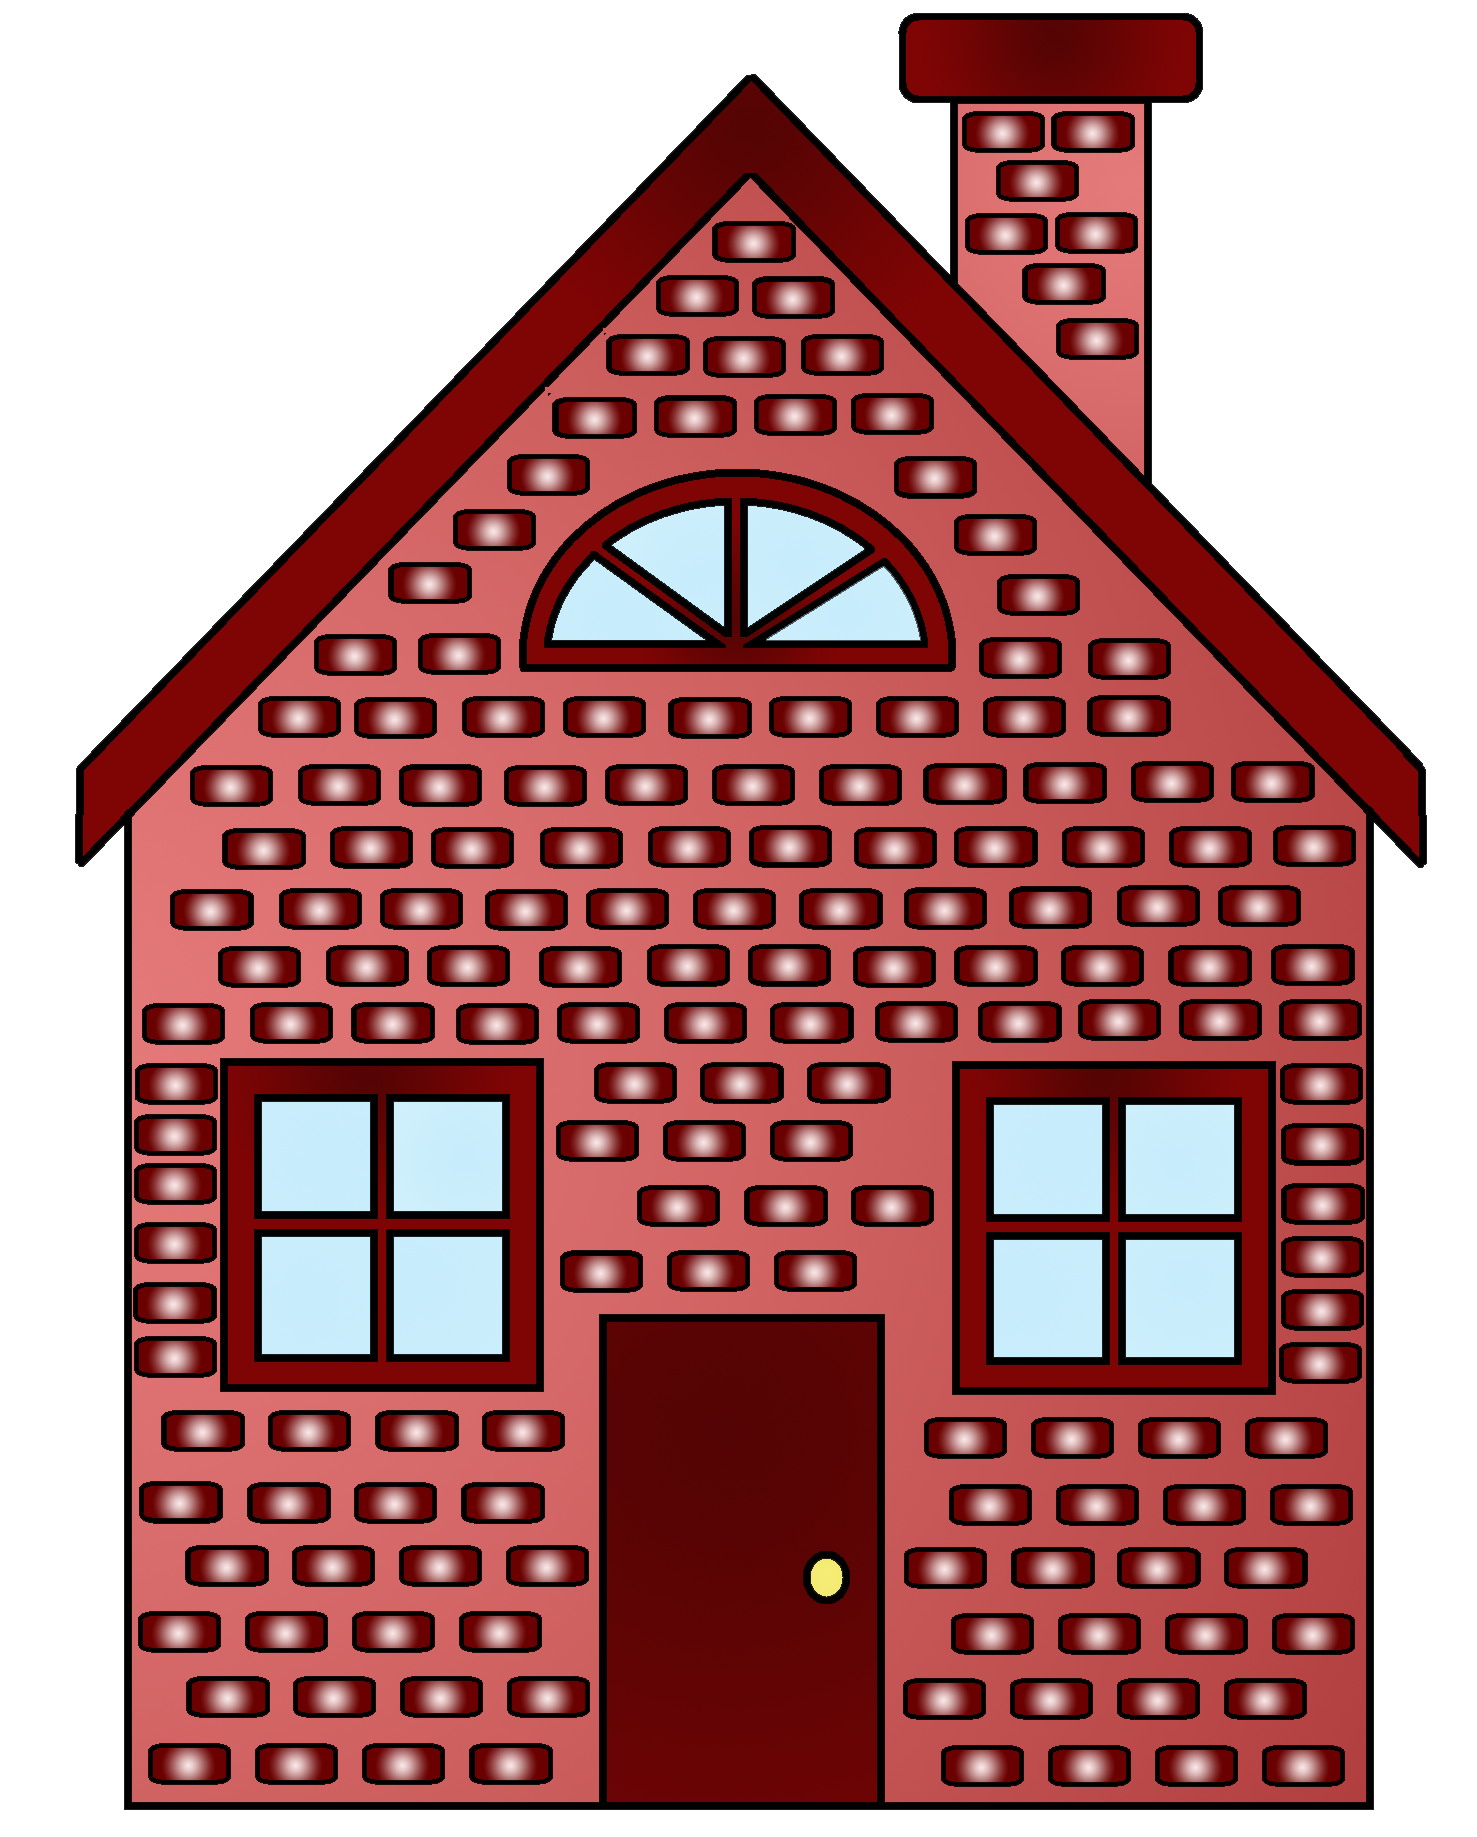 House on a hill clipart graphic freeuse download Brick building clipart - Clipground graphic freeuse download